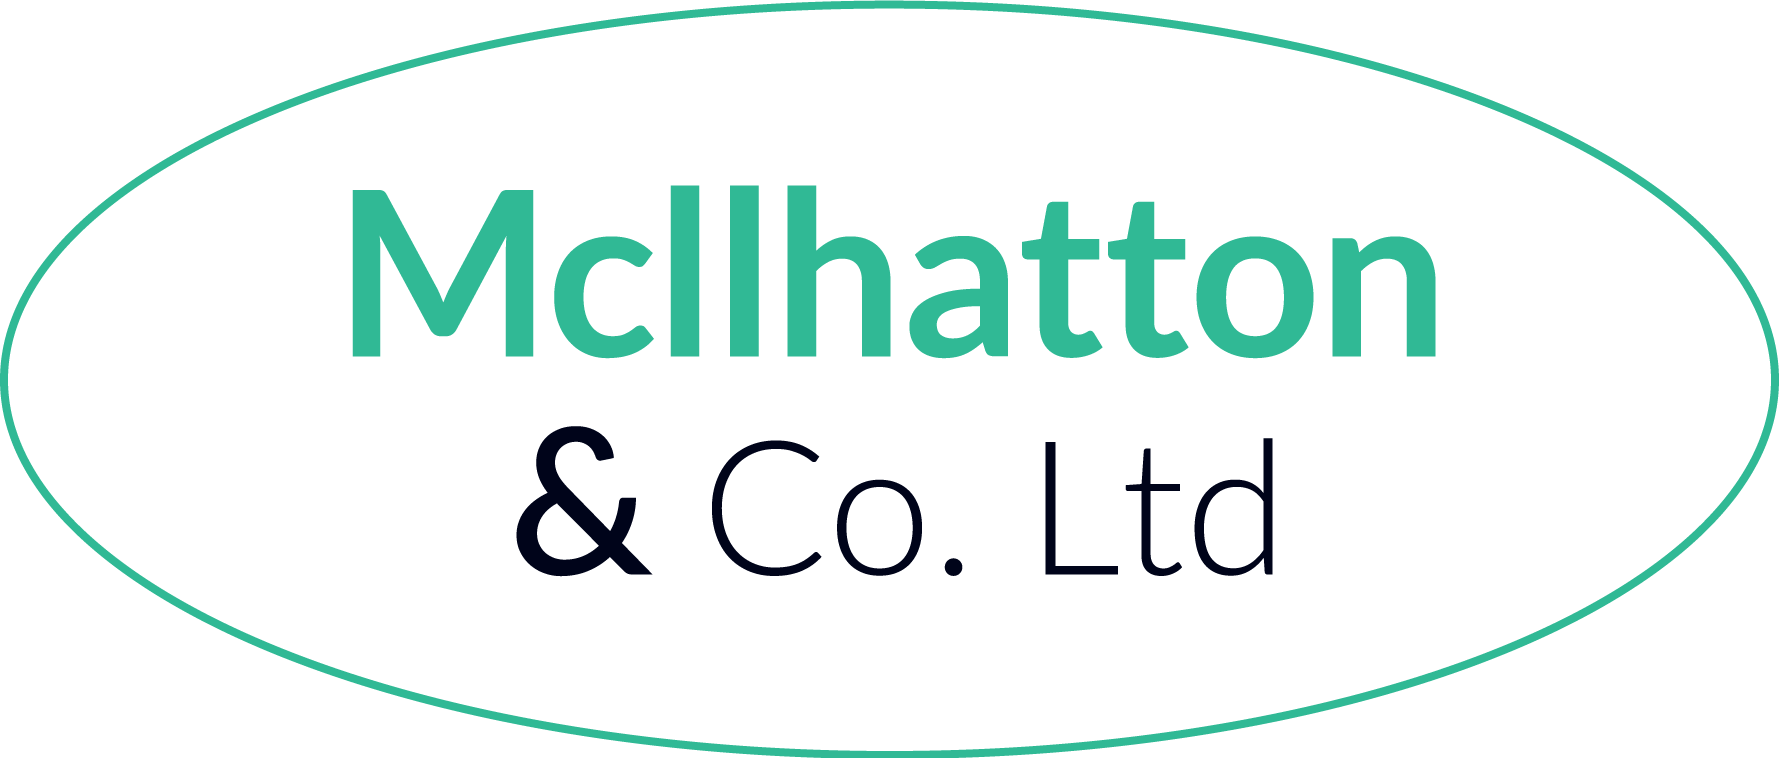 McIlhatton Windows